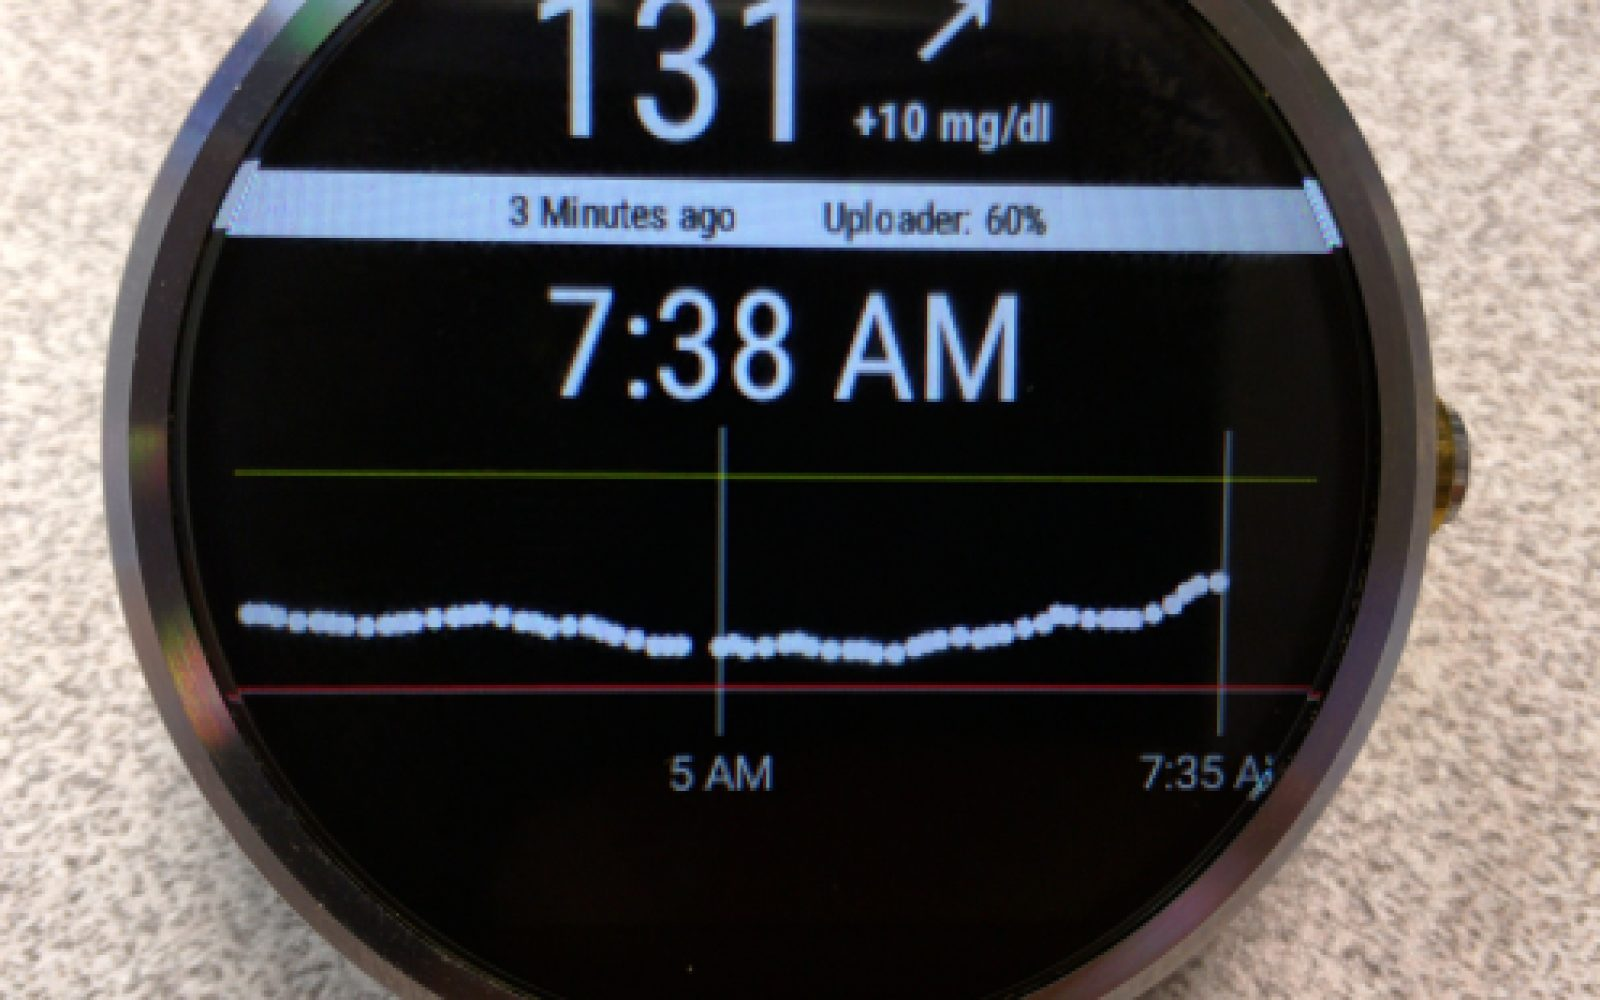 Developer builds a diabetes app for continuous blood glucose